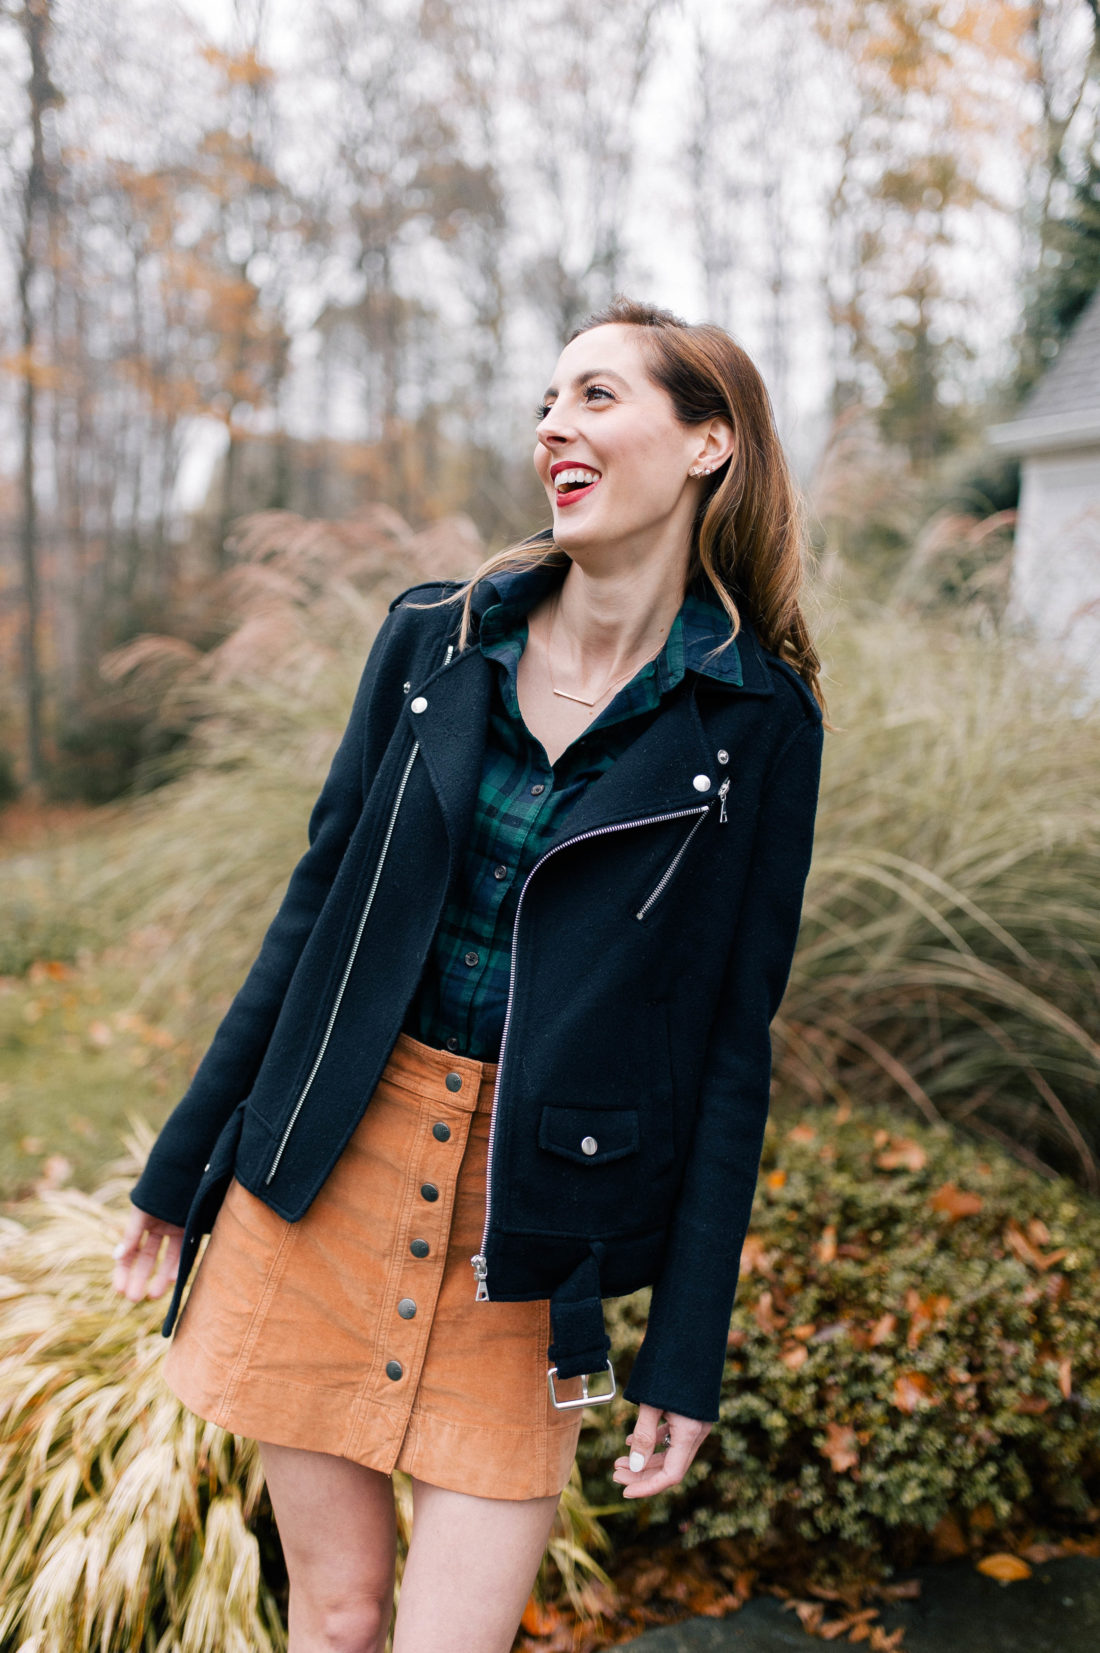 Eva Amurri Martino wears a plaid shirt, velvet button skirt, and blue motorcycle jacket on the pathway outside her Connecticut home